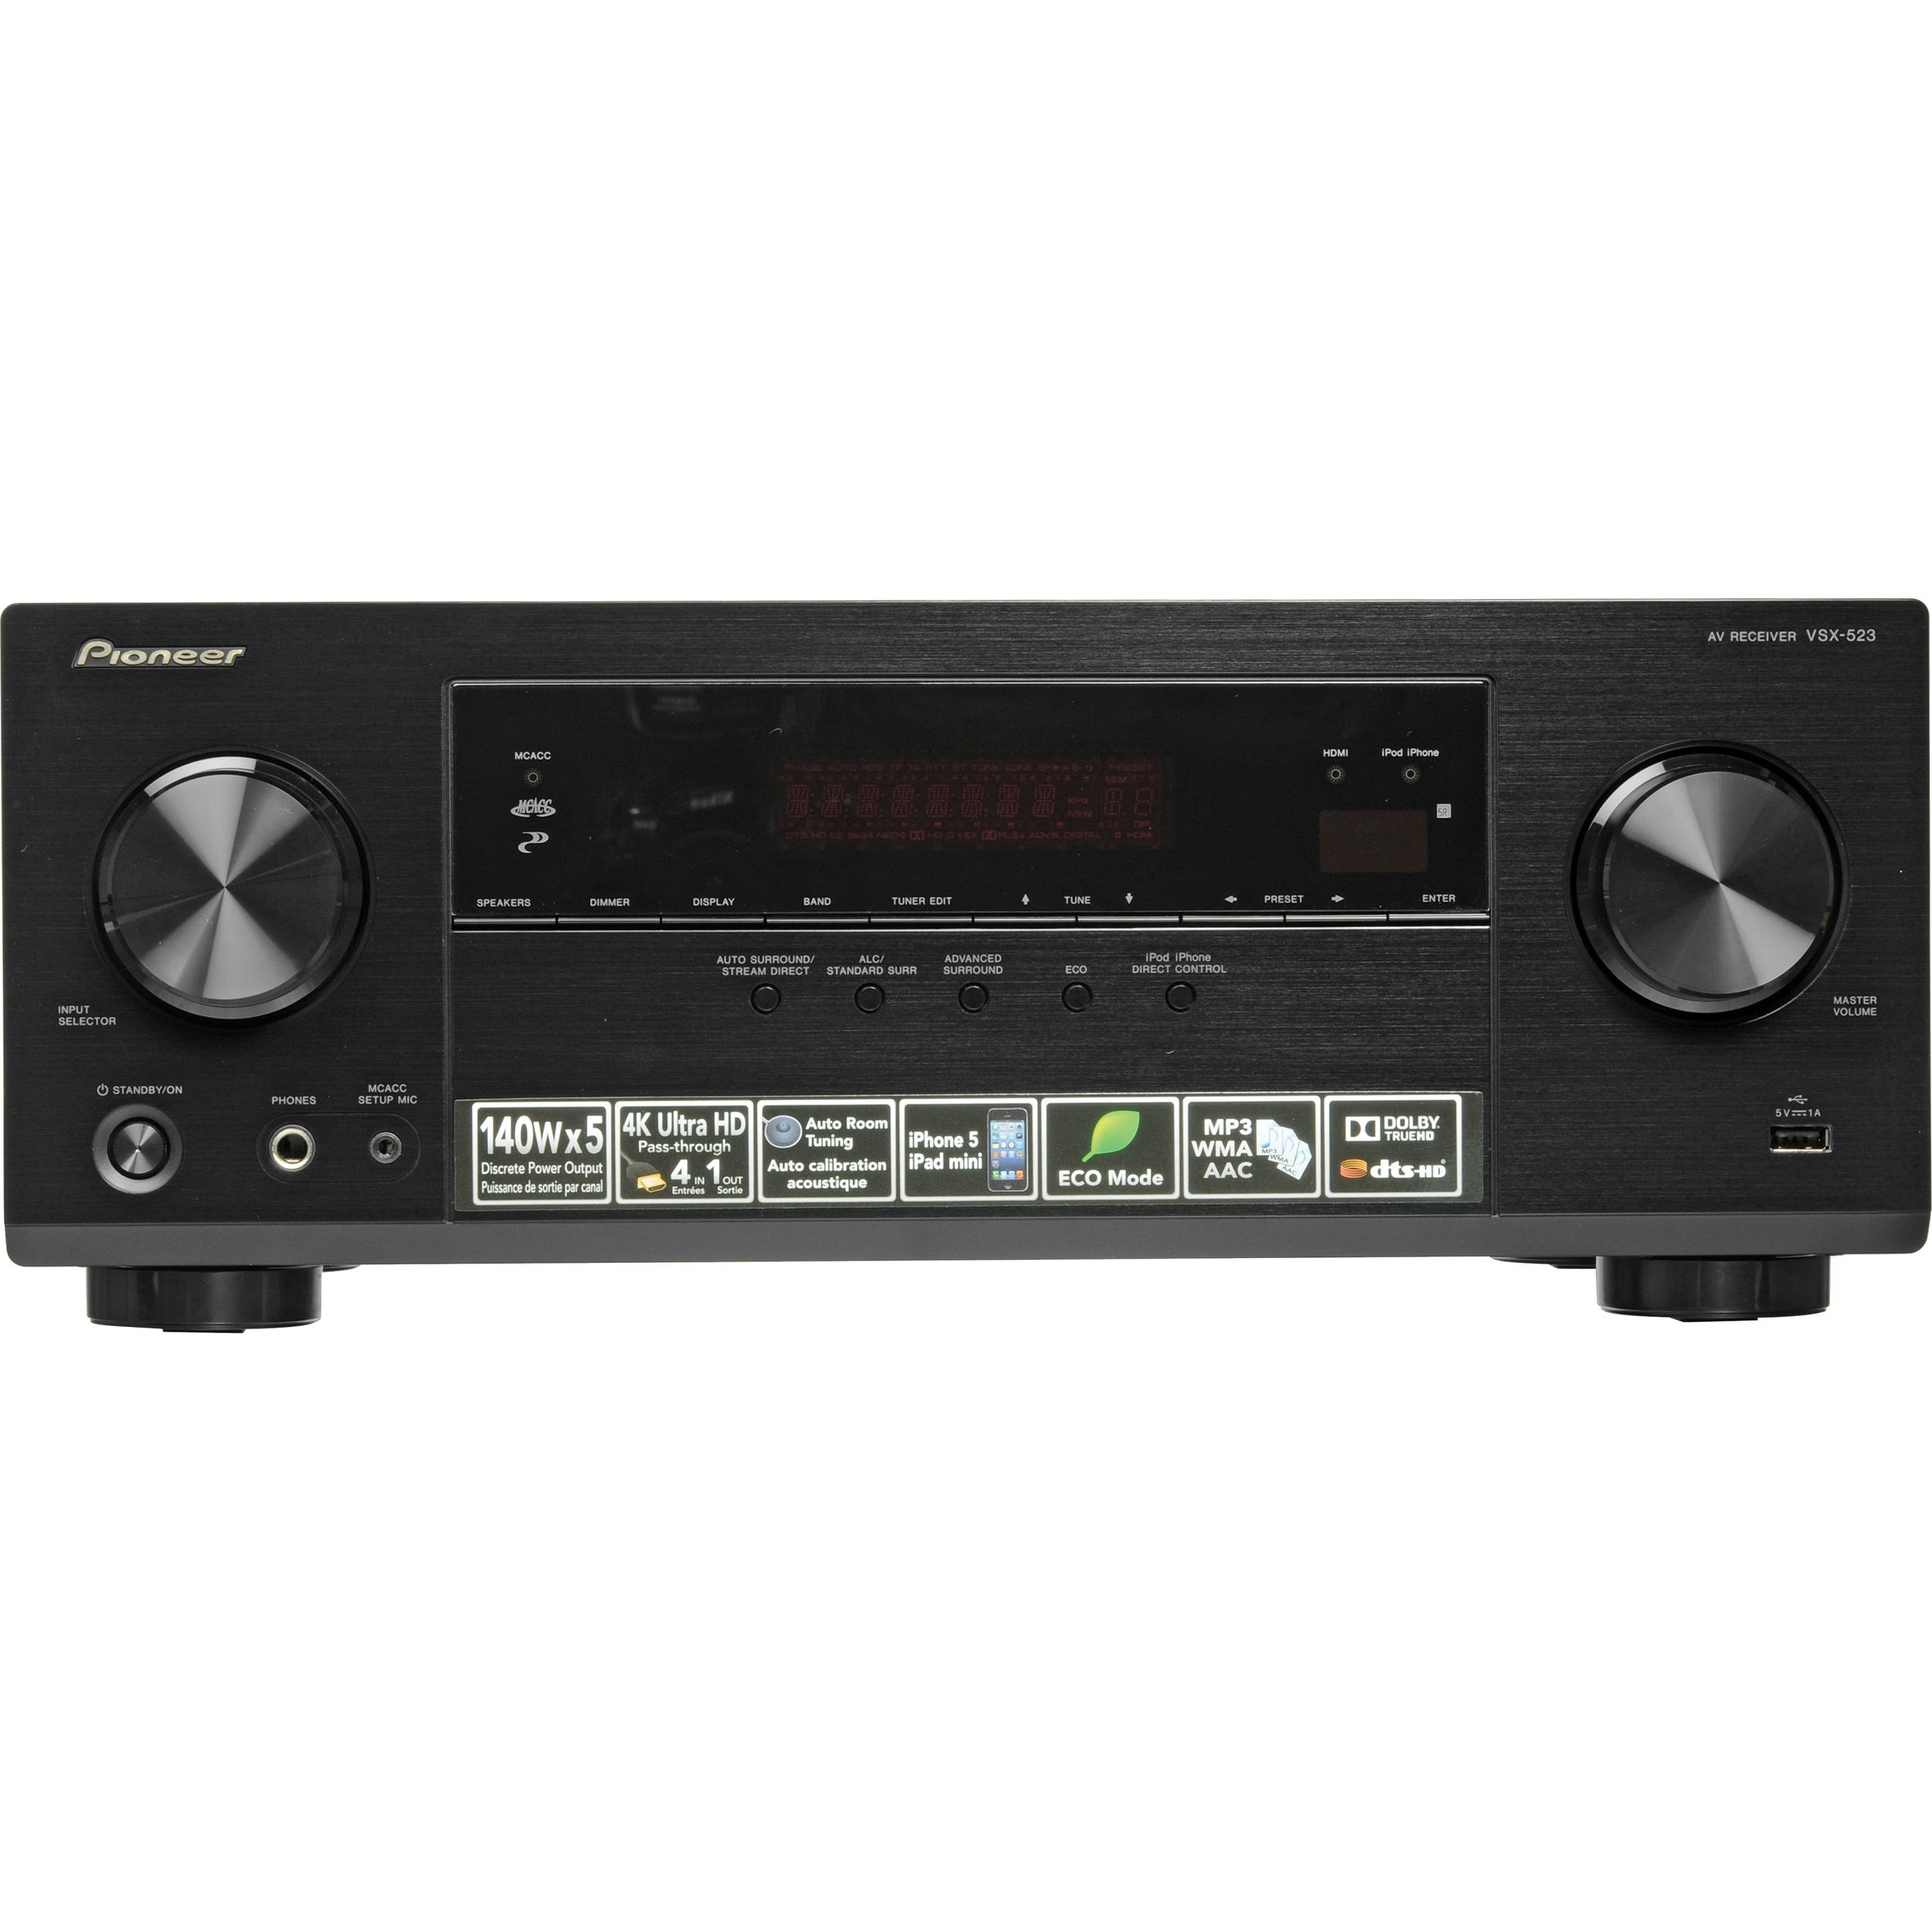 pioneer receiver vsx 522 review